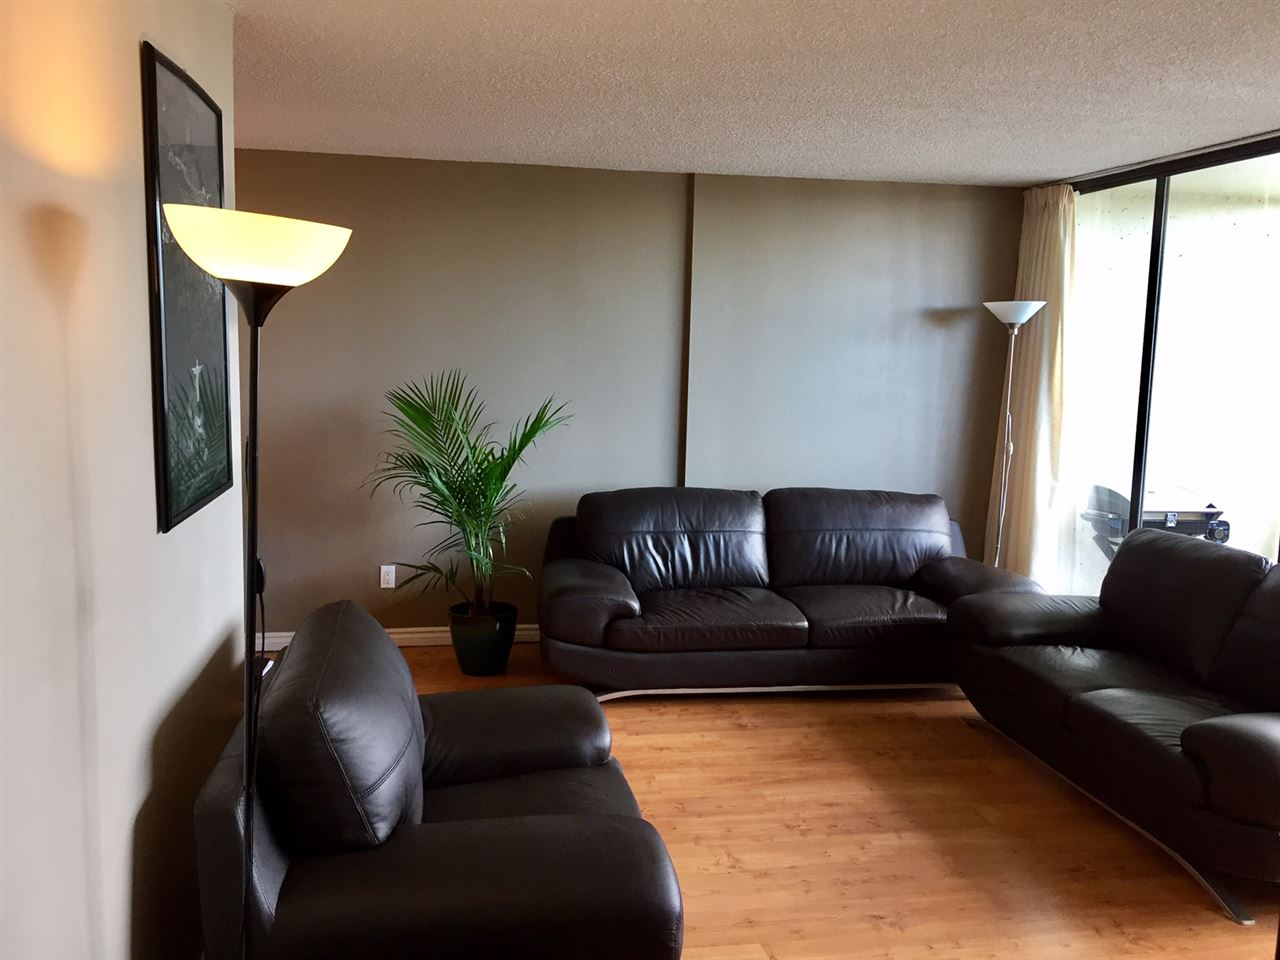 "Photo 2: 1606 4105 MAYWOOD Street in Burnaby: Metrotown Condo for sale in ""TIMES SQUARE"" (Burnaby South)  : MLS(r) # R2178631"